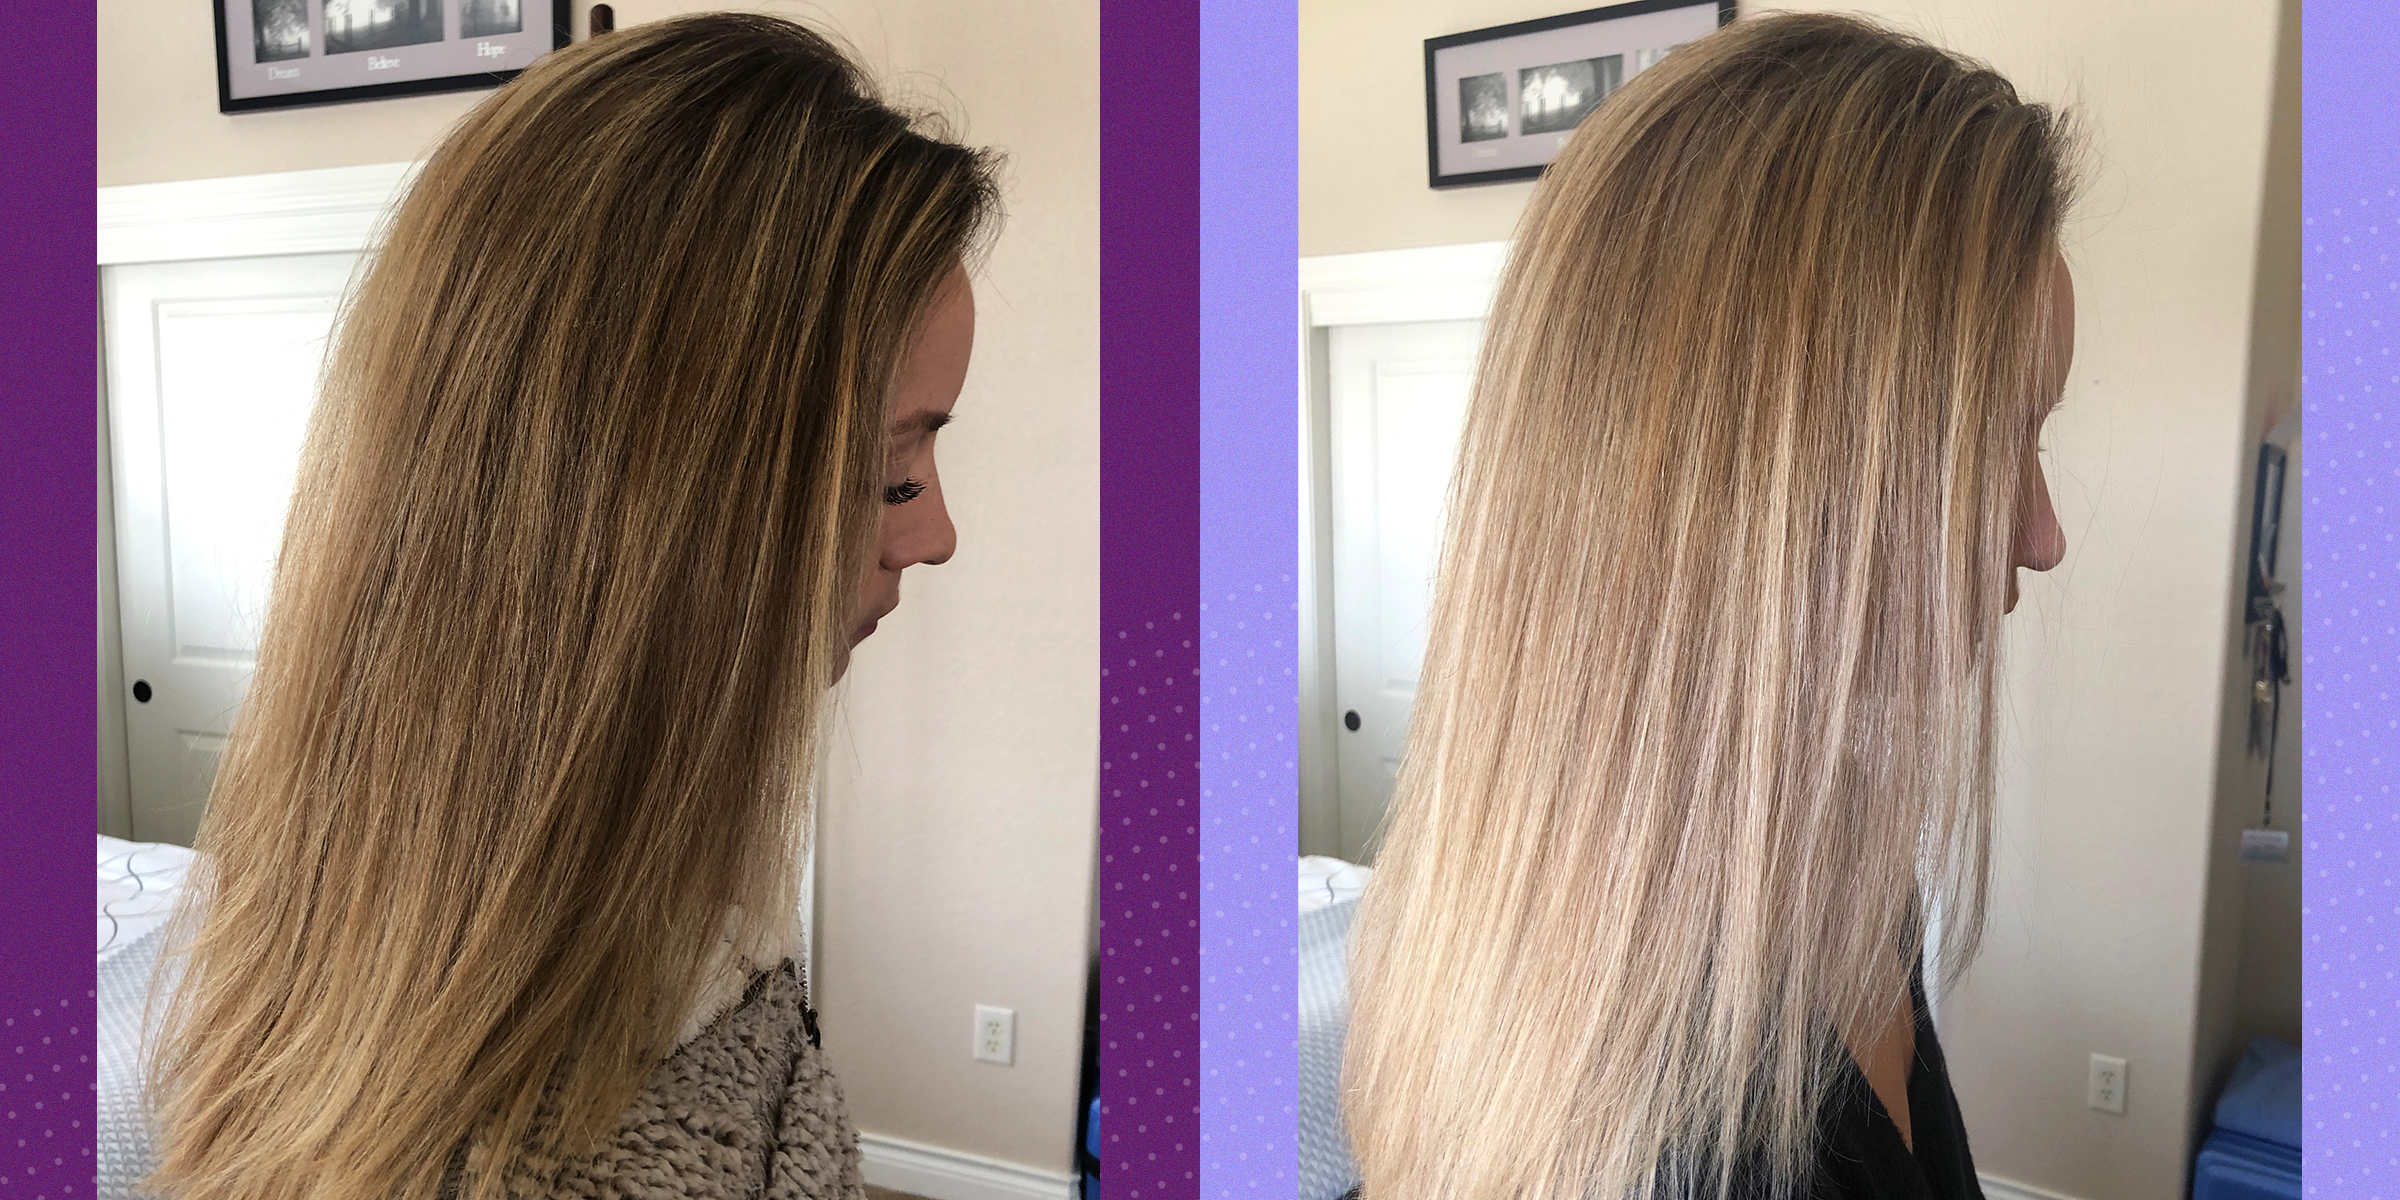 The Madison Reed Hair Color Kit Gave Me Salon Worthy Results